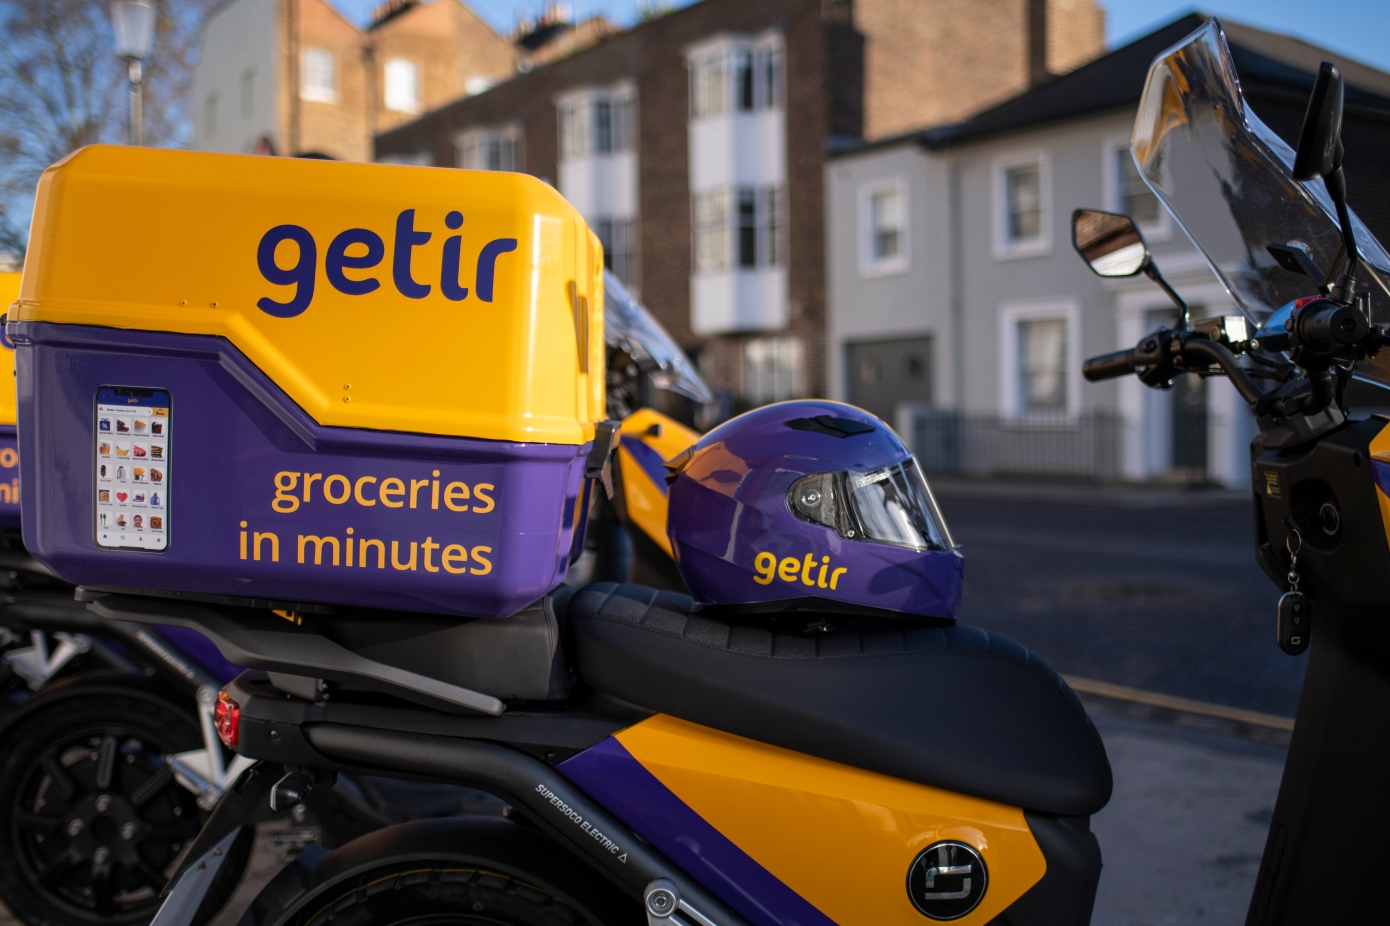 Instant grocery startup Getir makes its first acquisition to expand into Spain and Italy